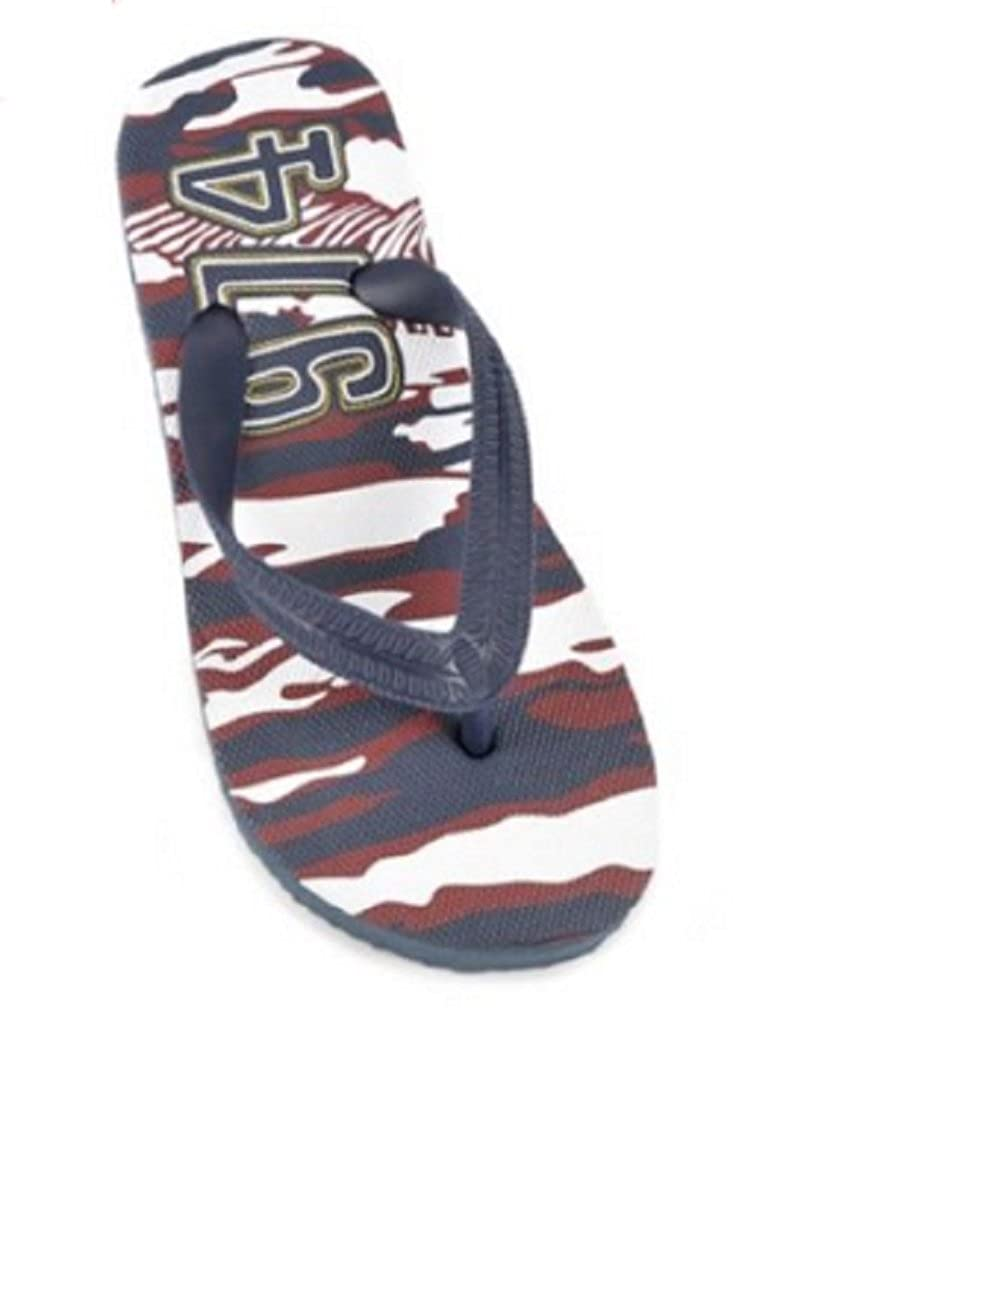 Boys Flip Flops Toe Post Beach Sandals Size 9 10 11 12 13 1 2 3 Infant/Junior